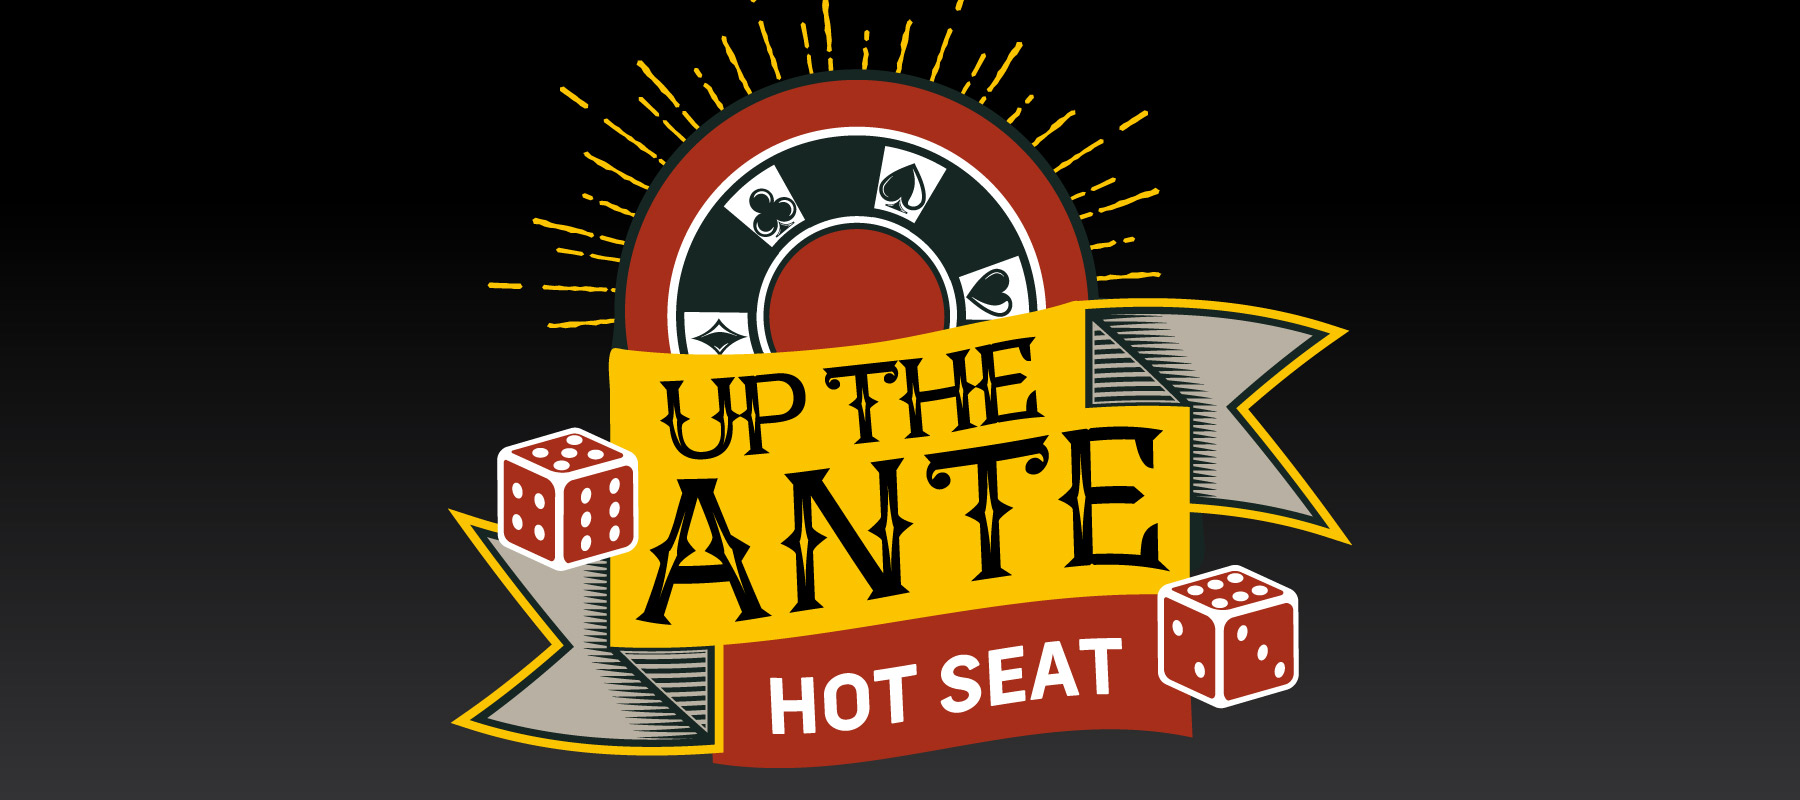 Up the Ante Hot Seat